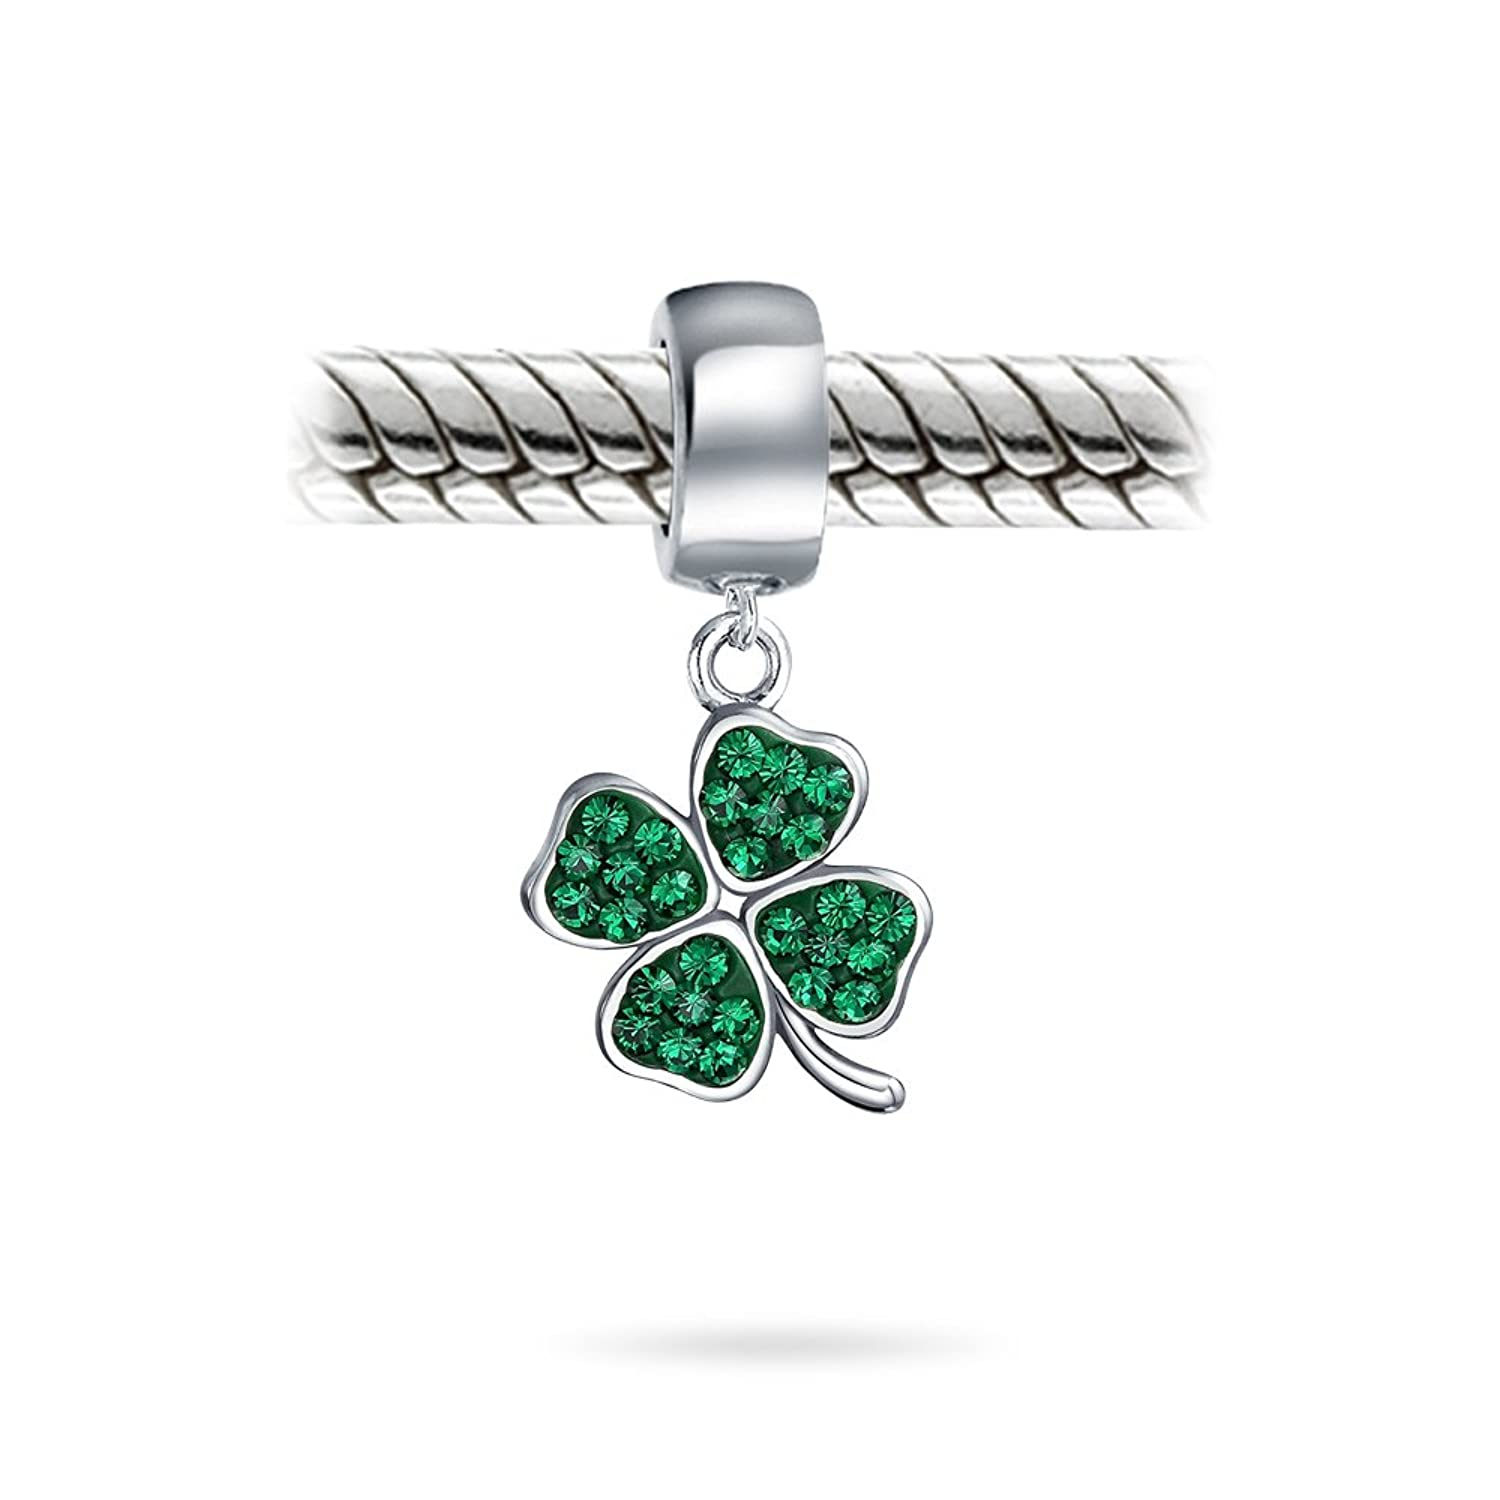 Green lucky shamrock necklace four leaf clover charm emerald green - Amazon Com Bling Jewelry 925 Silver Green Crystal Shamrock 4 Leaf Clover Dangle Bead Charm Jewelry